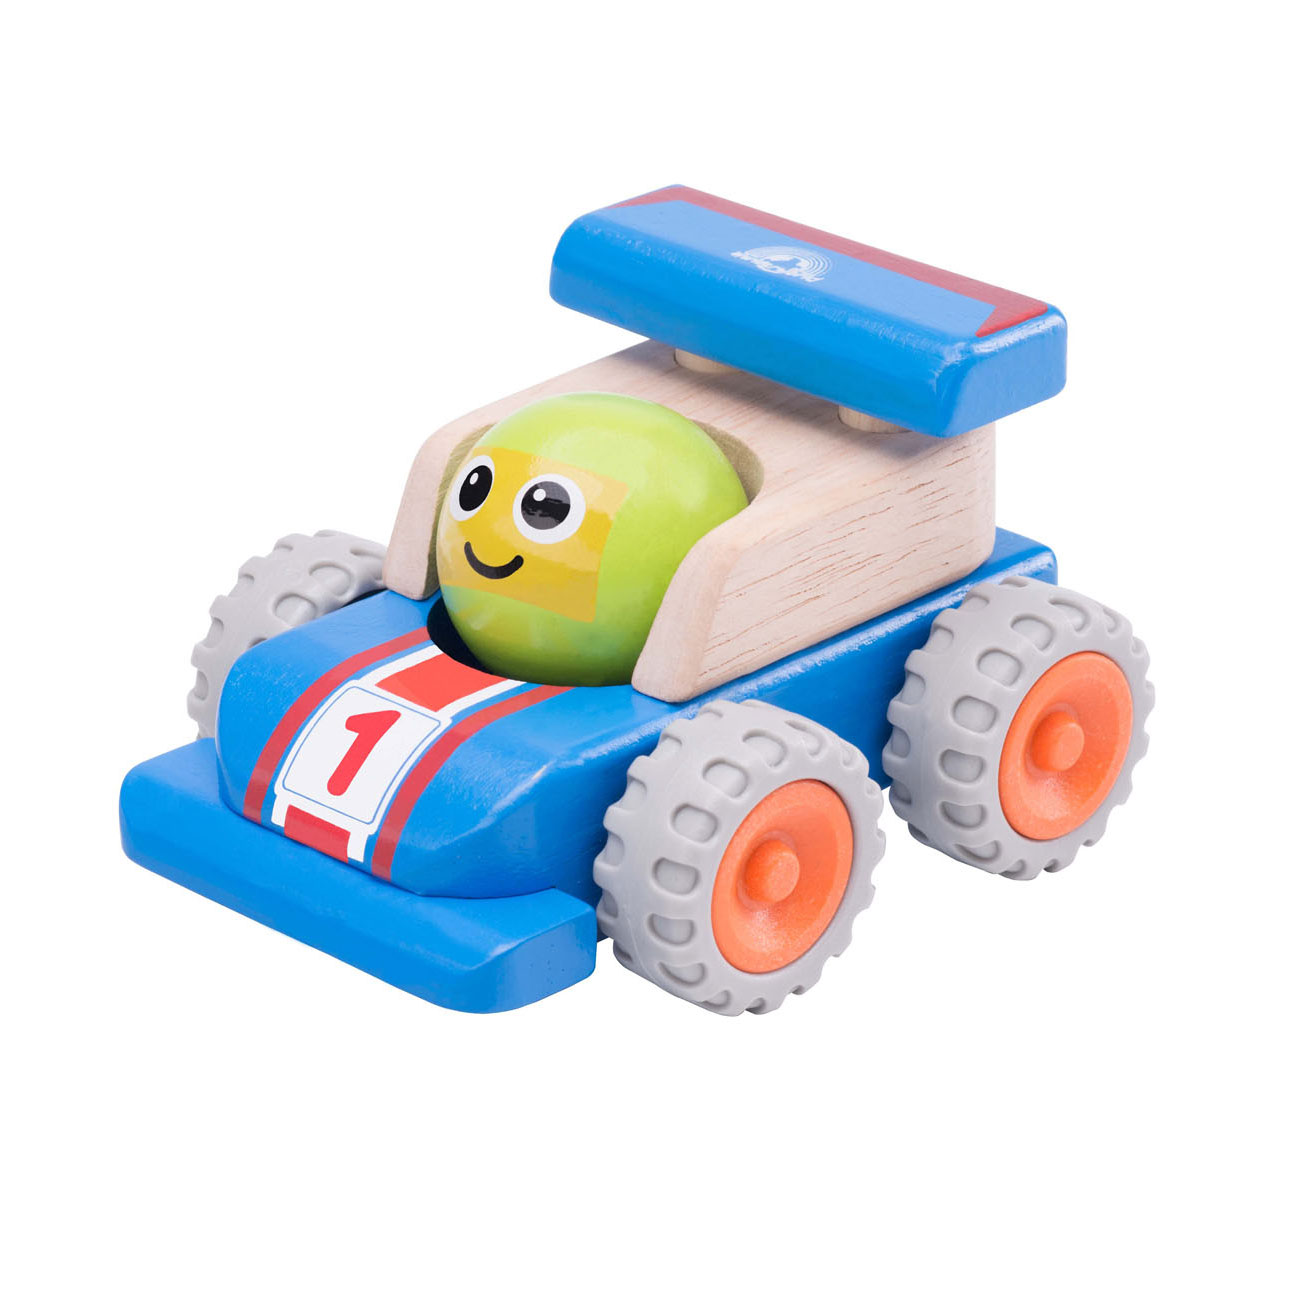 Wonderworld Houten Smiley Racewagen